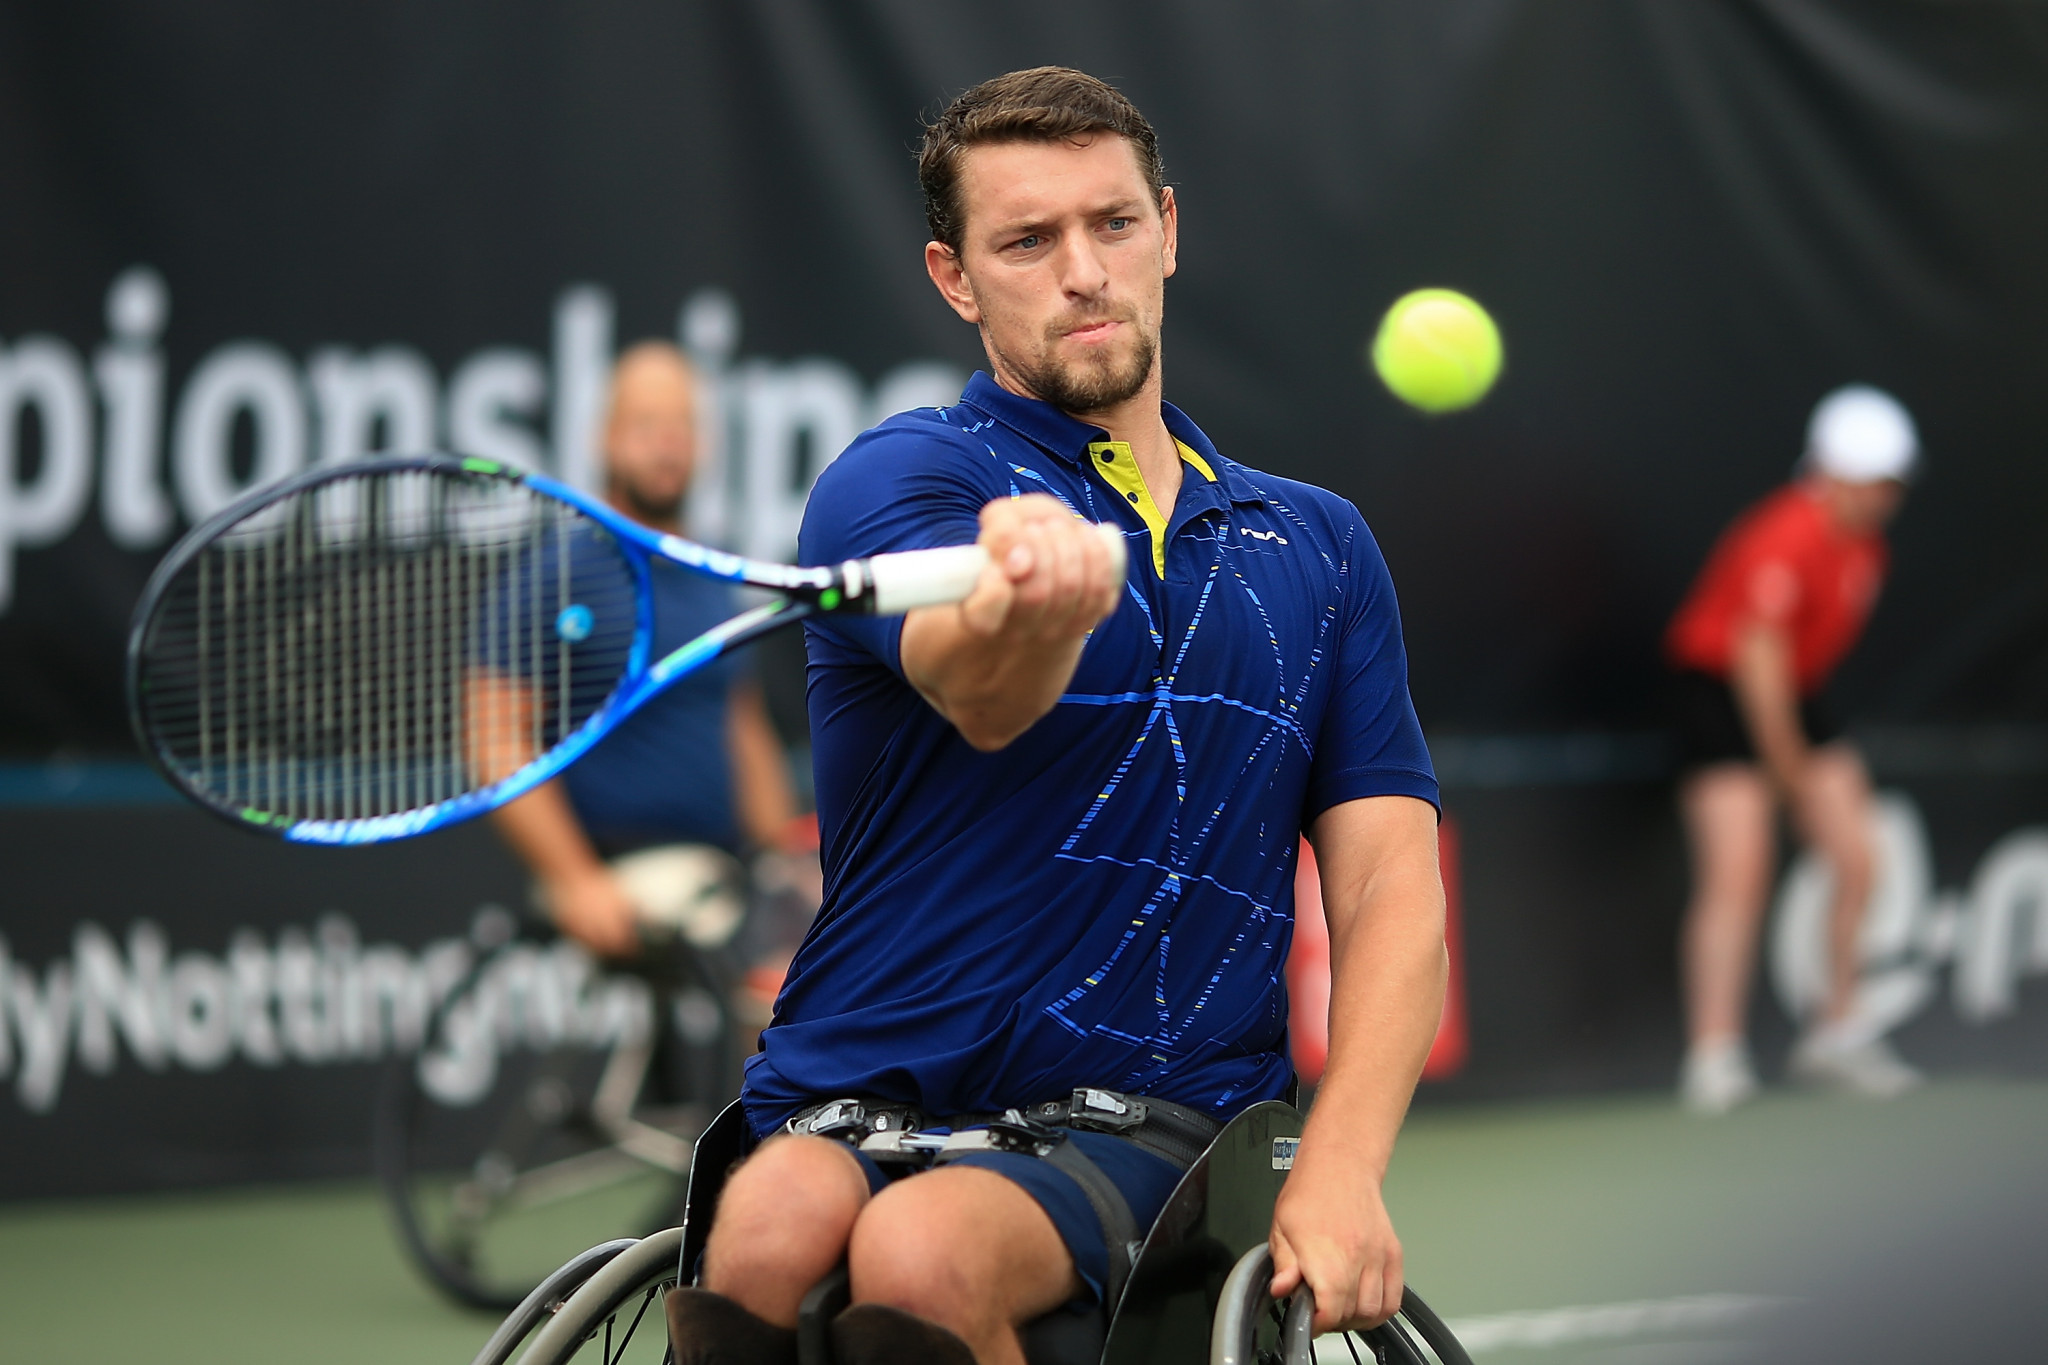 Home favourite through to quarter-finals at Belgian Open Wheelchair Tennis Championships